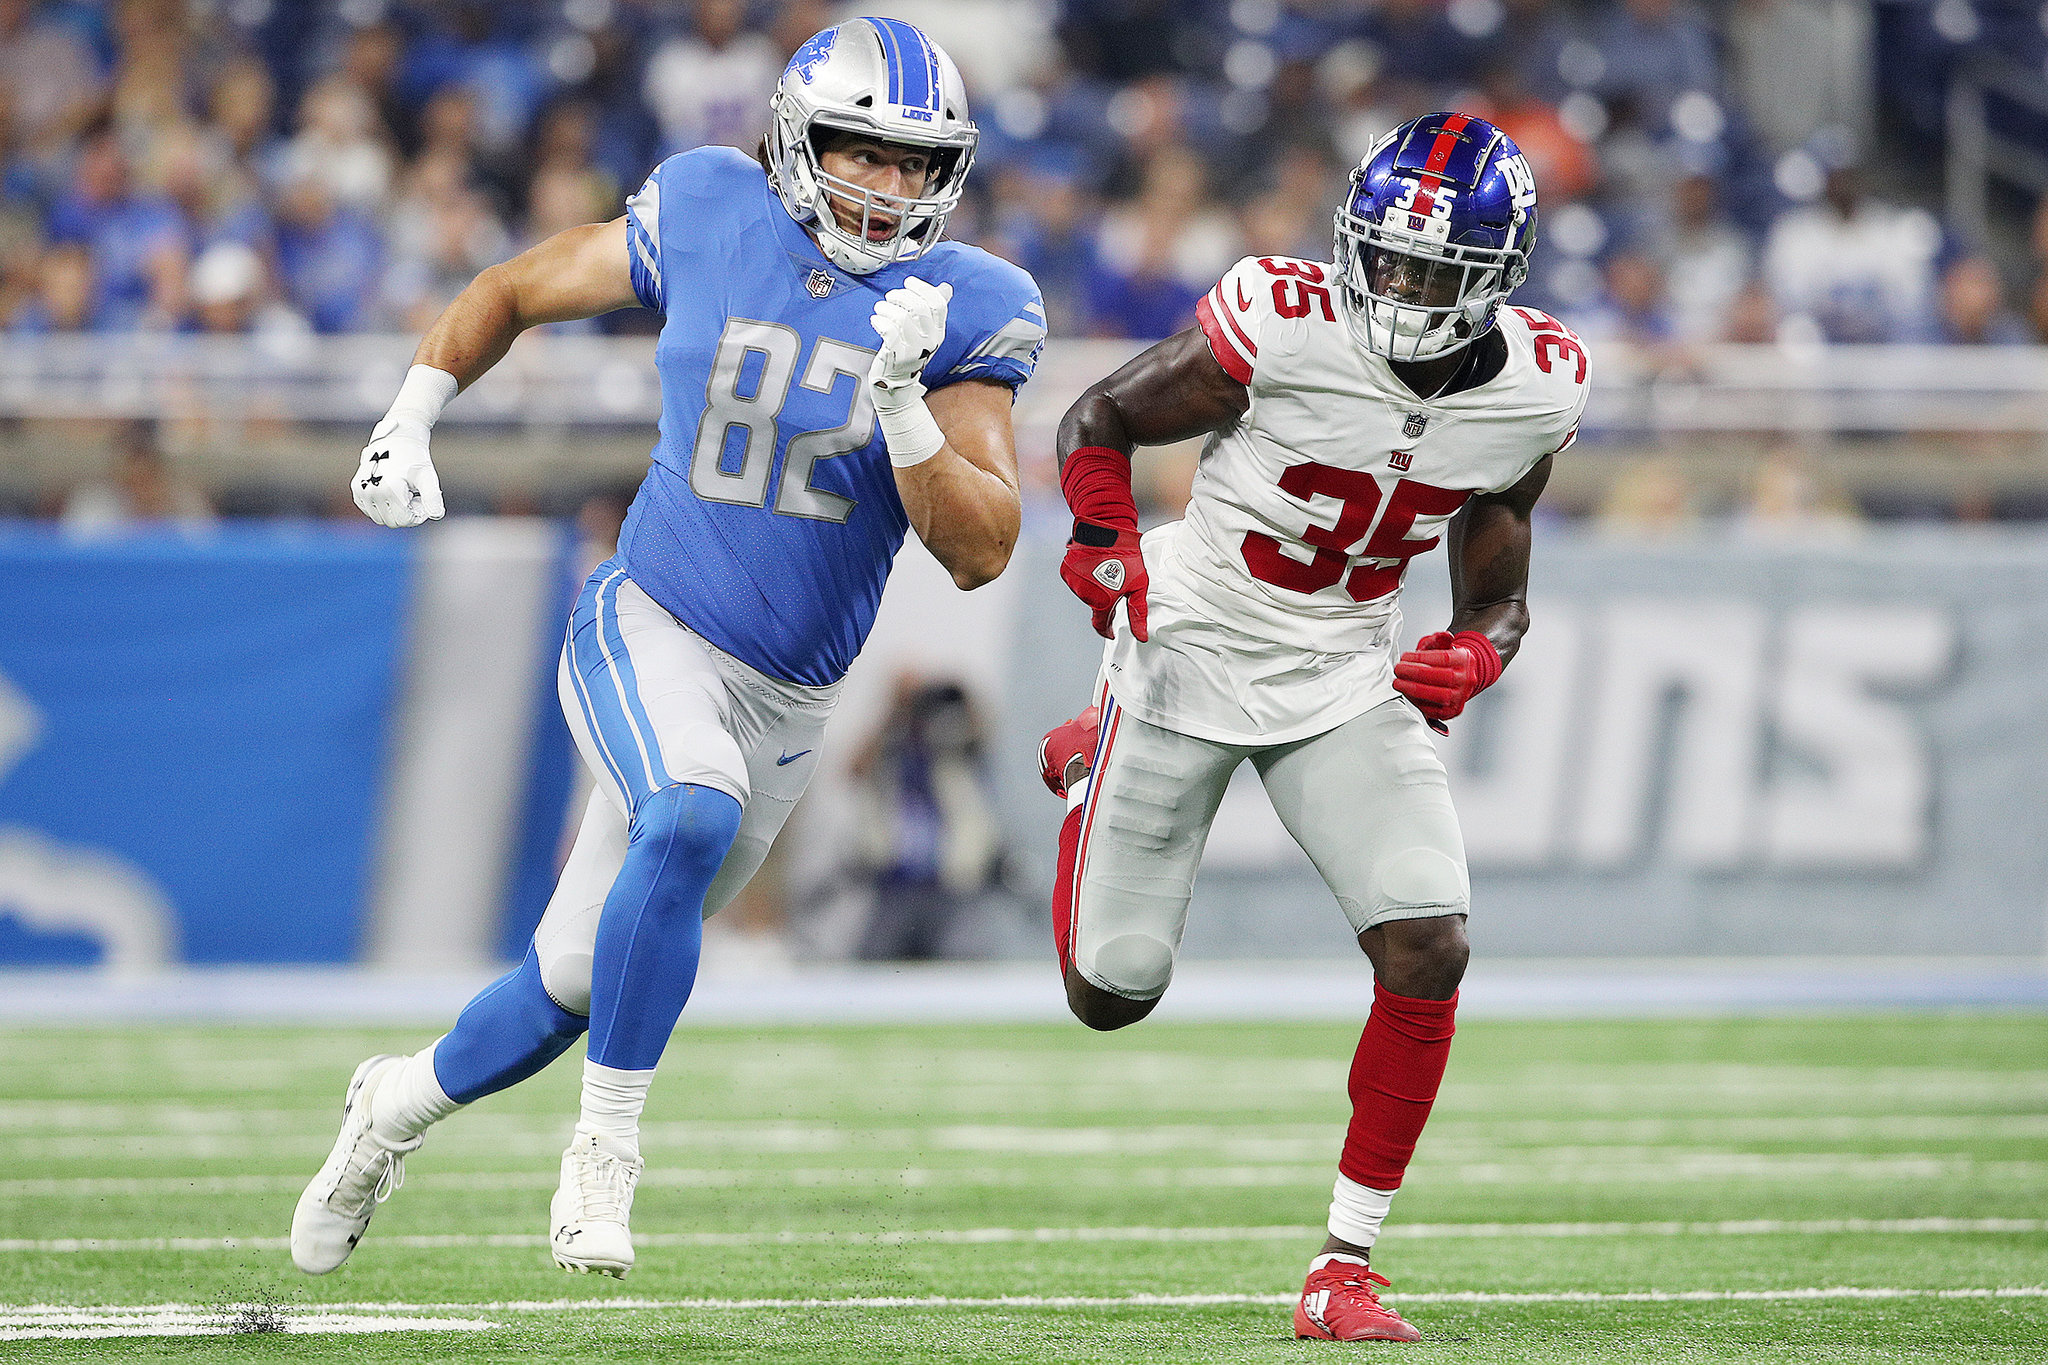 Image result for Curtis Riley New York Giants